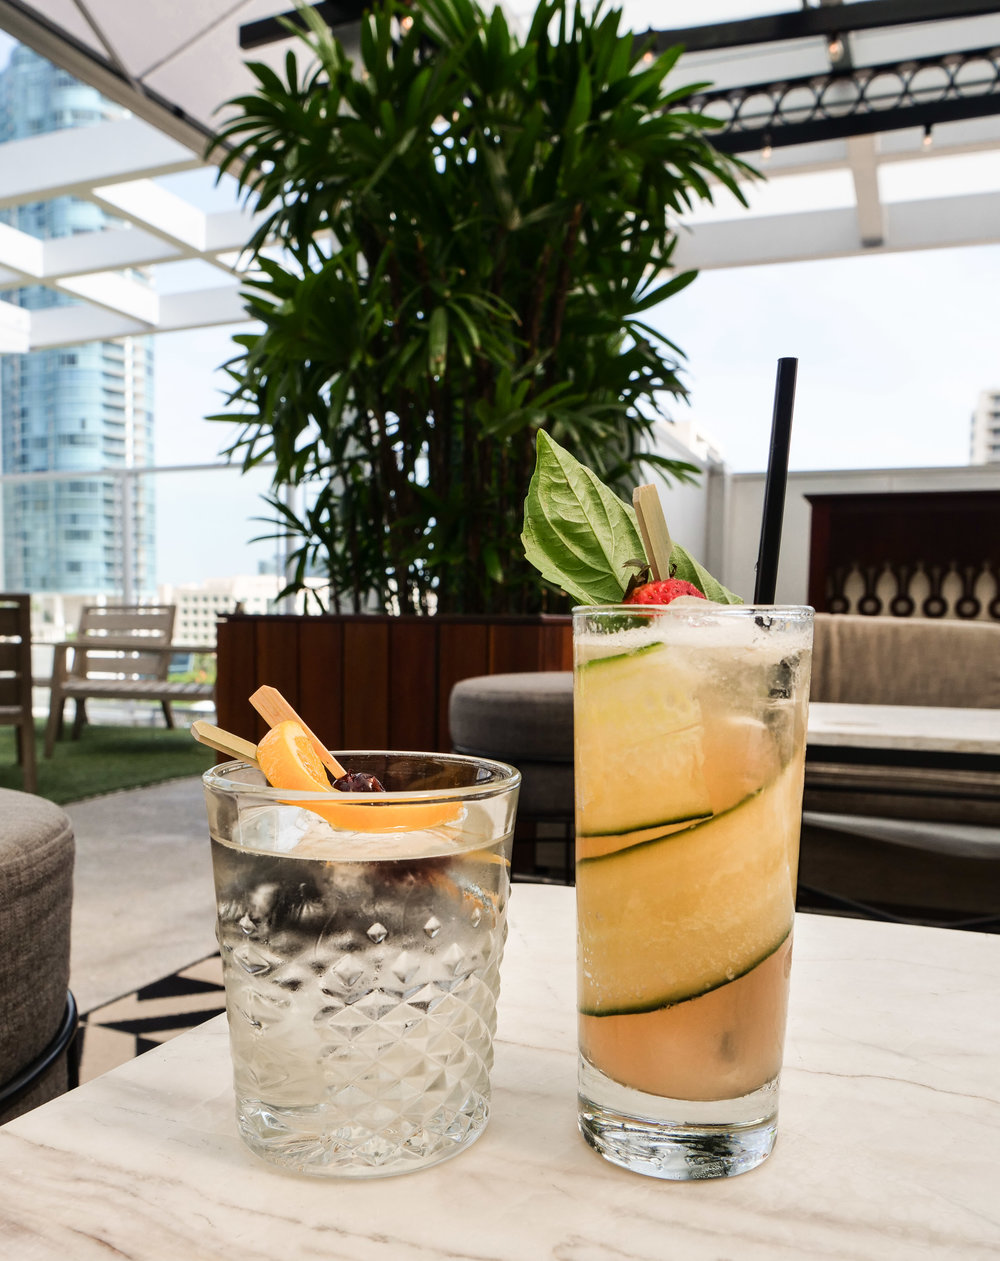 Cocktails at Rooftop @ 1WLO